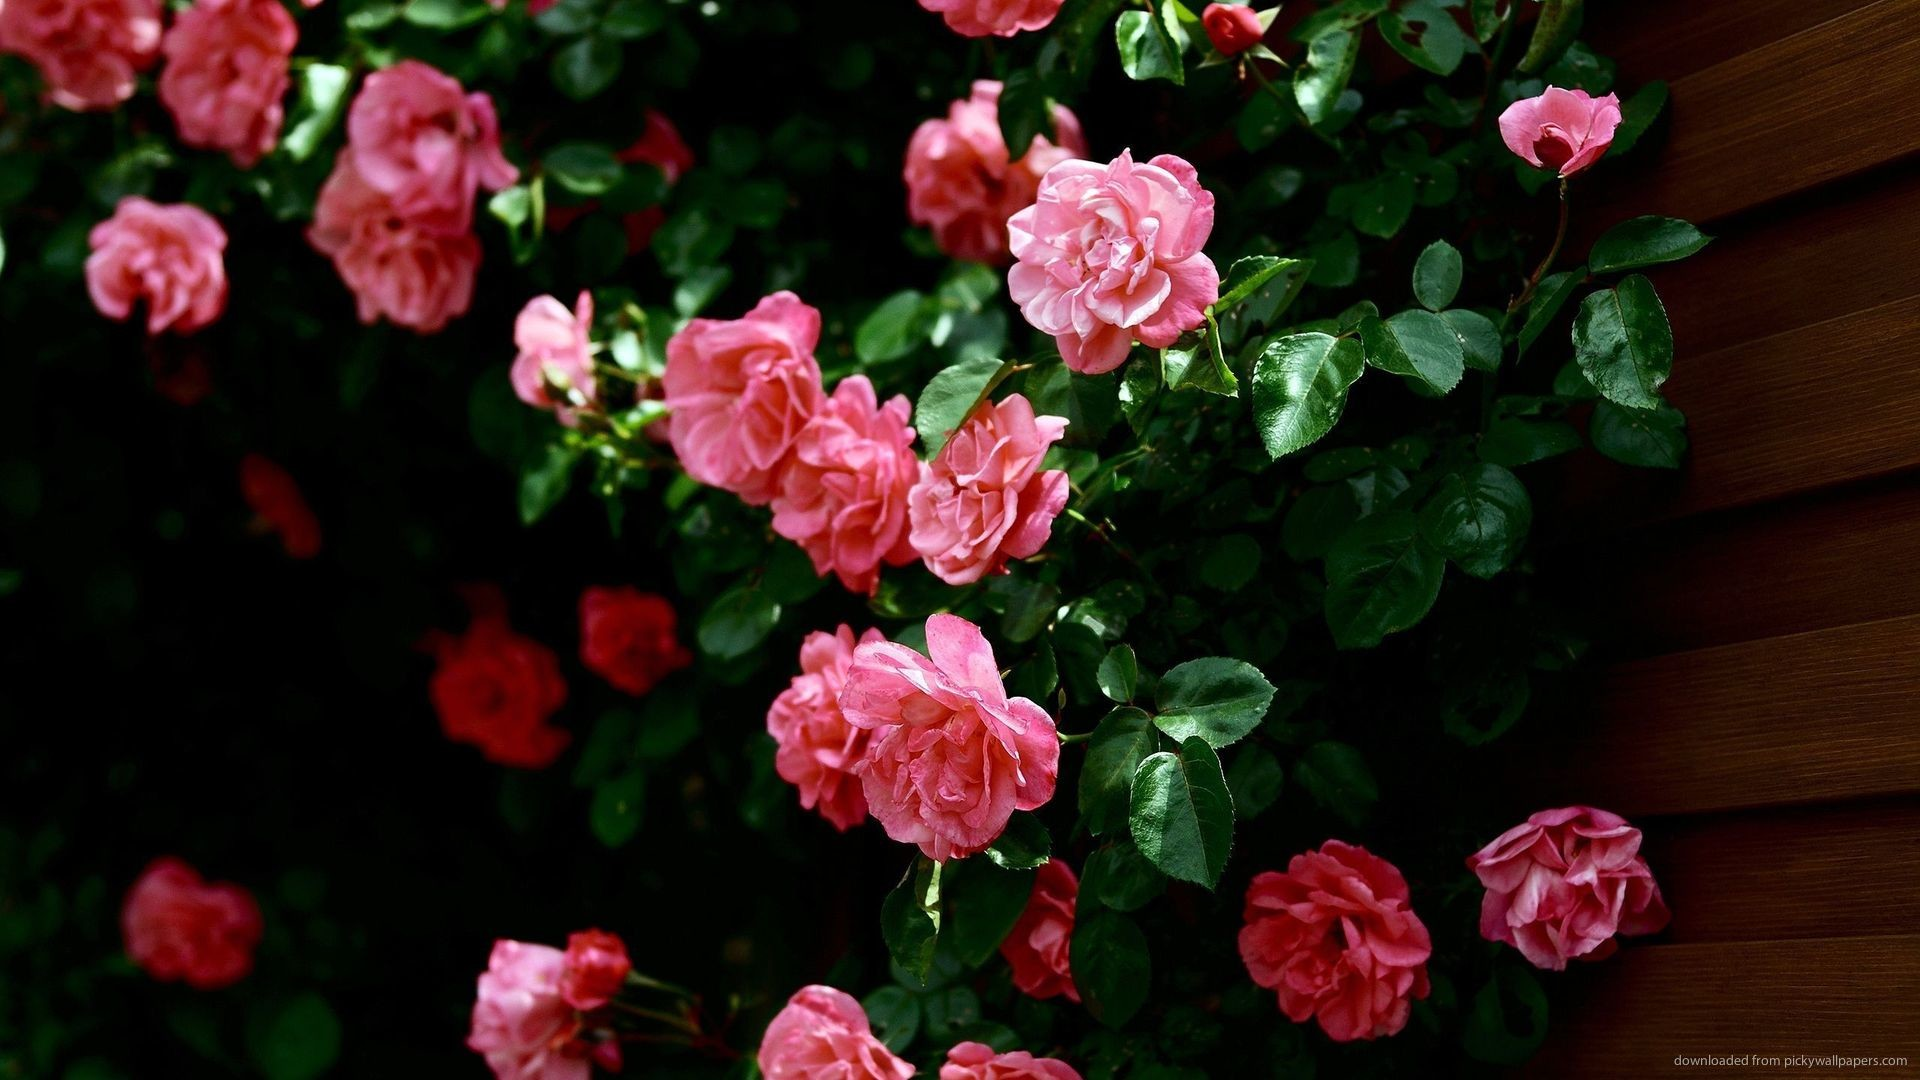 Roses screensaver wallpaper 45 images - Pink rose black background wallpaper ...